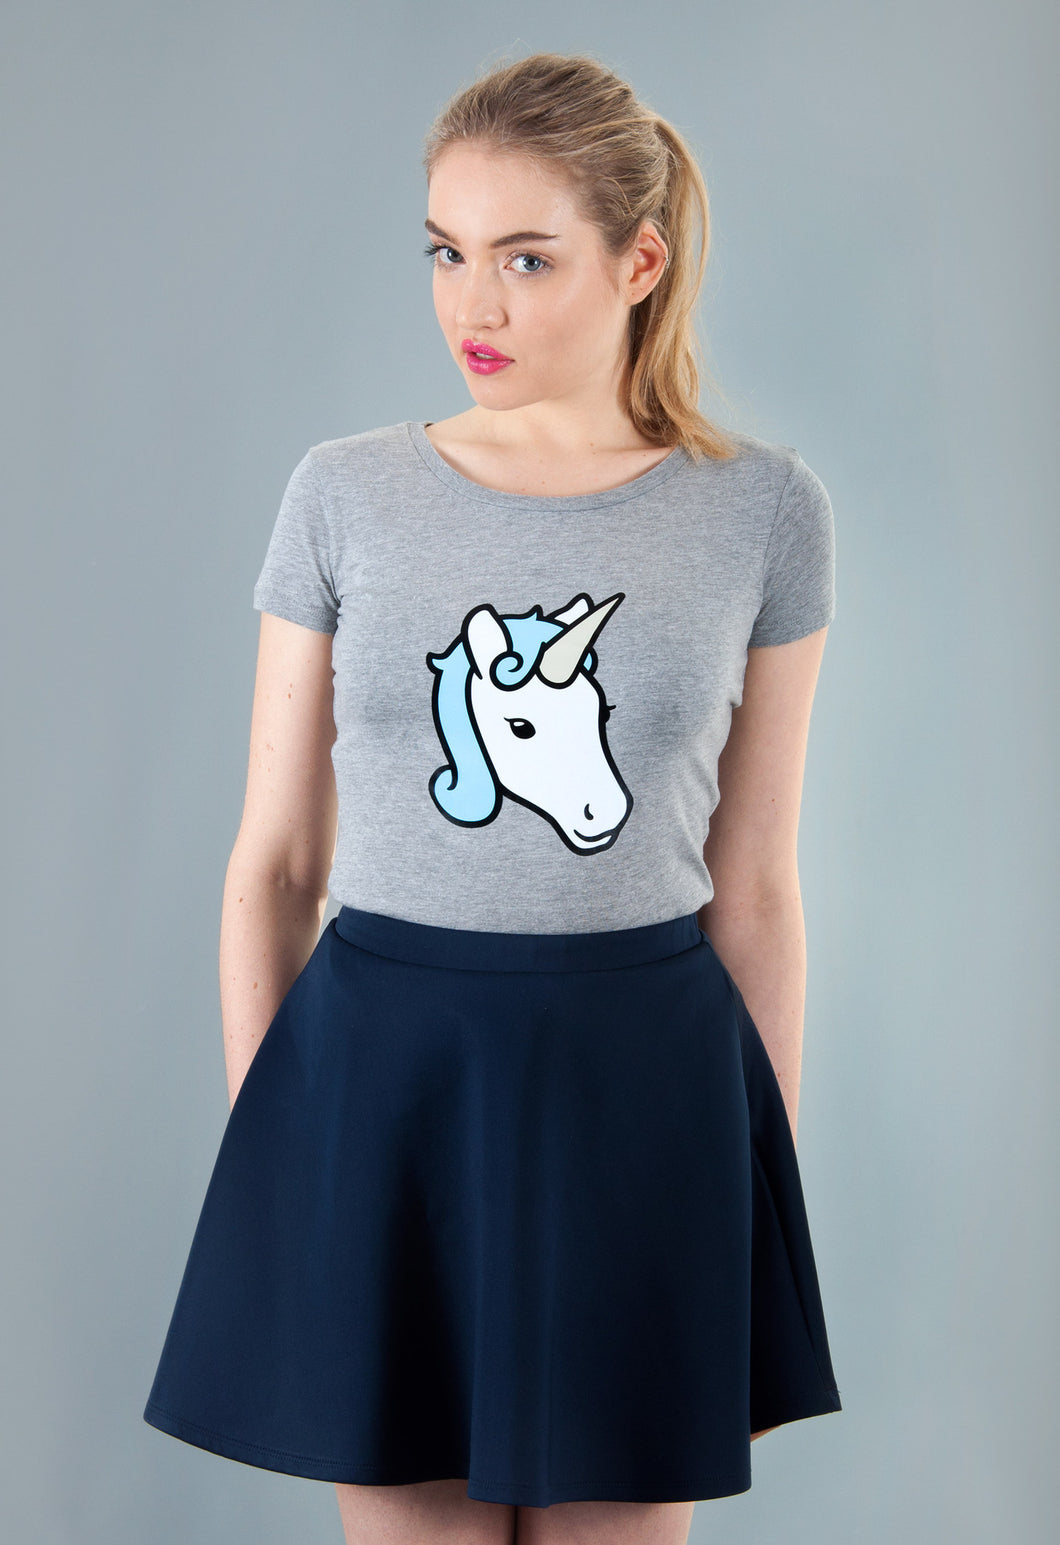 grey unicorn t-shirt